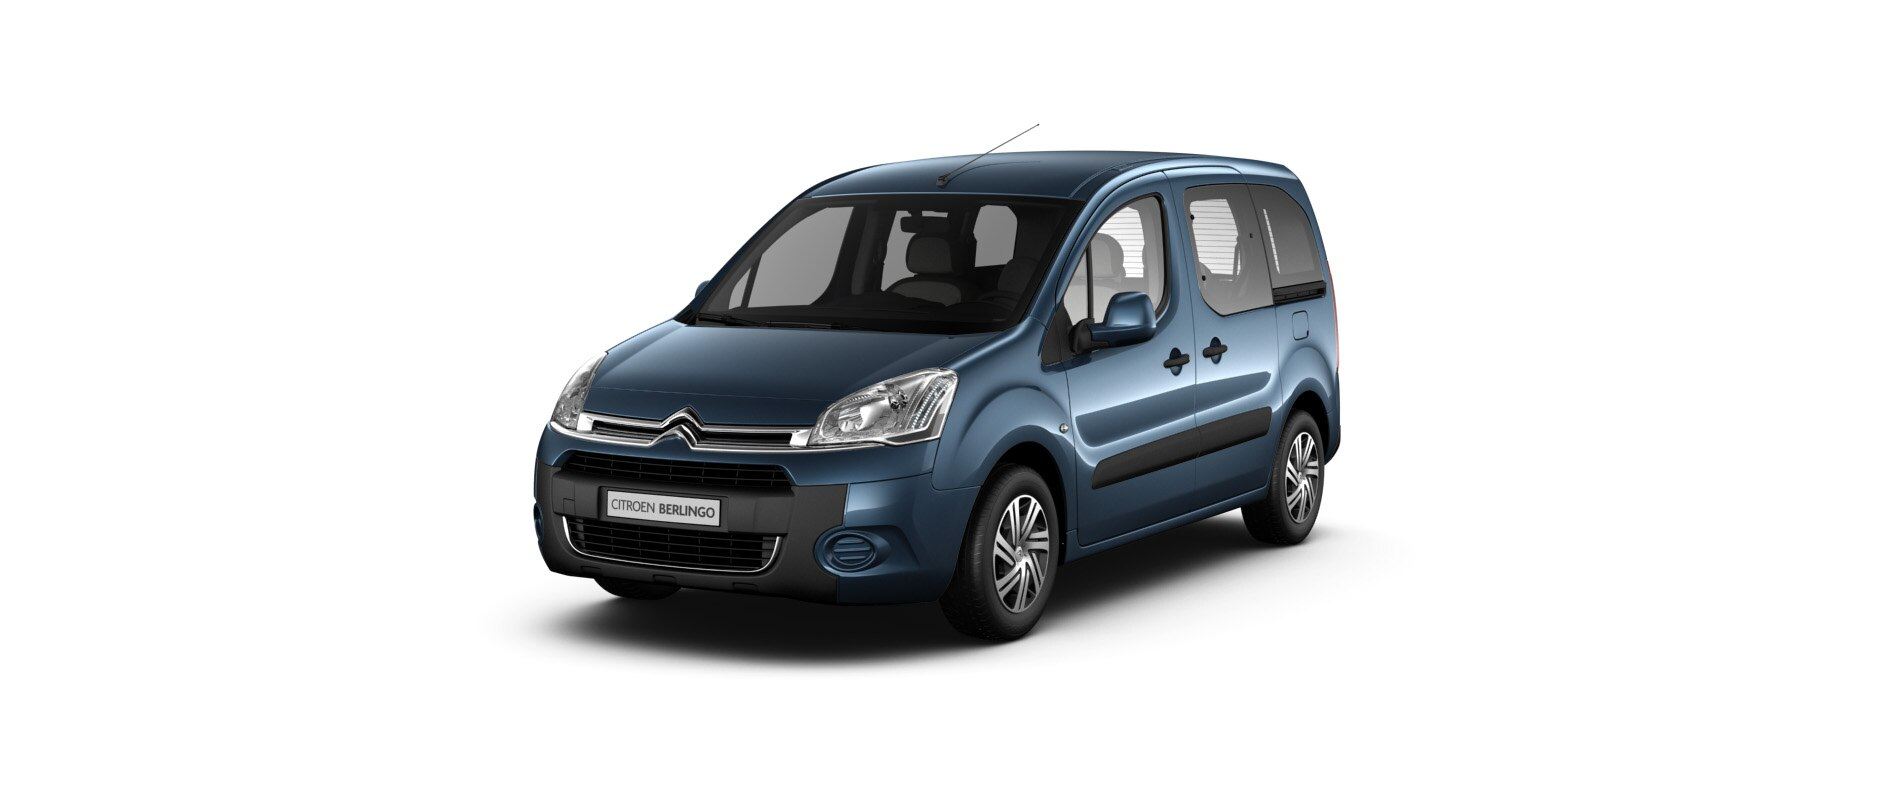 02_Confort-BleuKyanos-citroen-Berlingo-Multispace